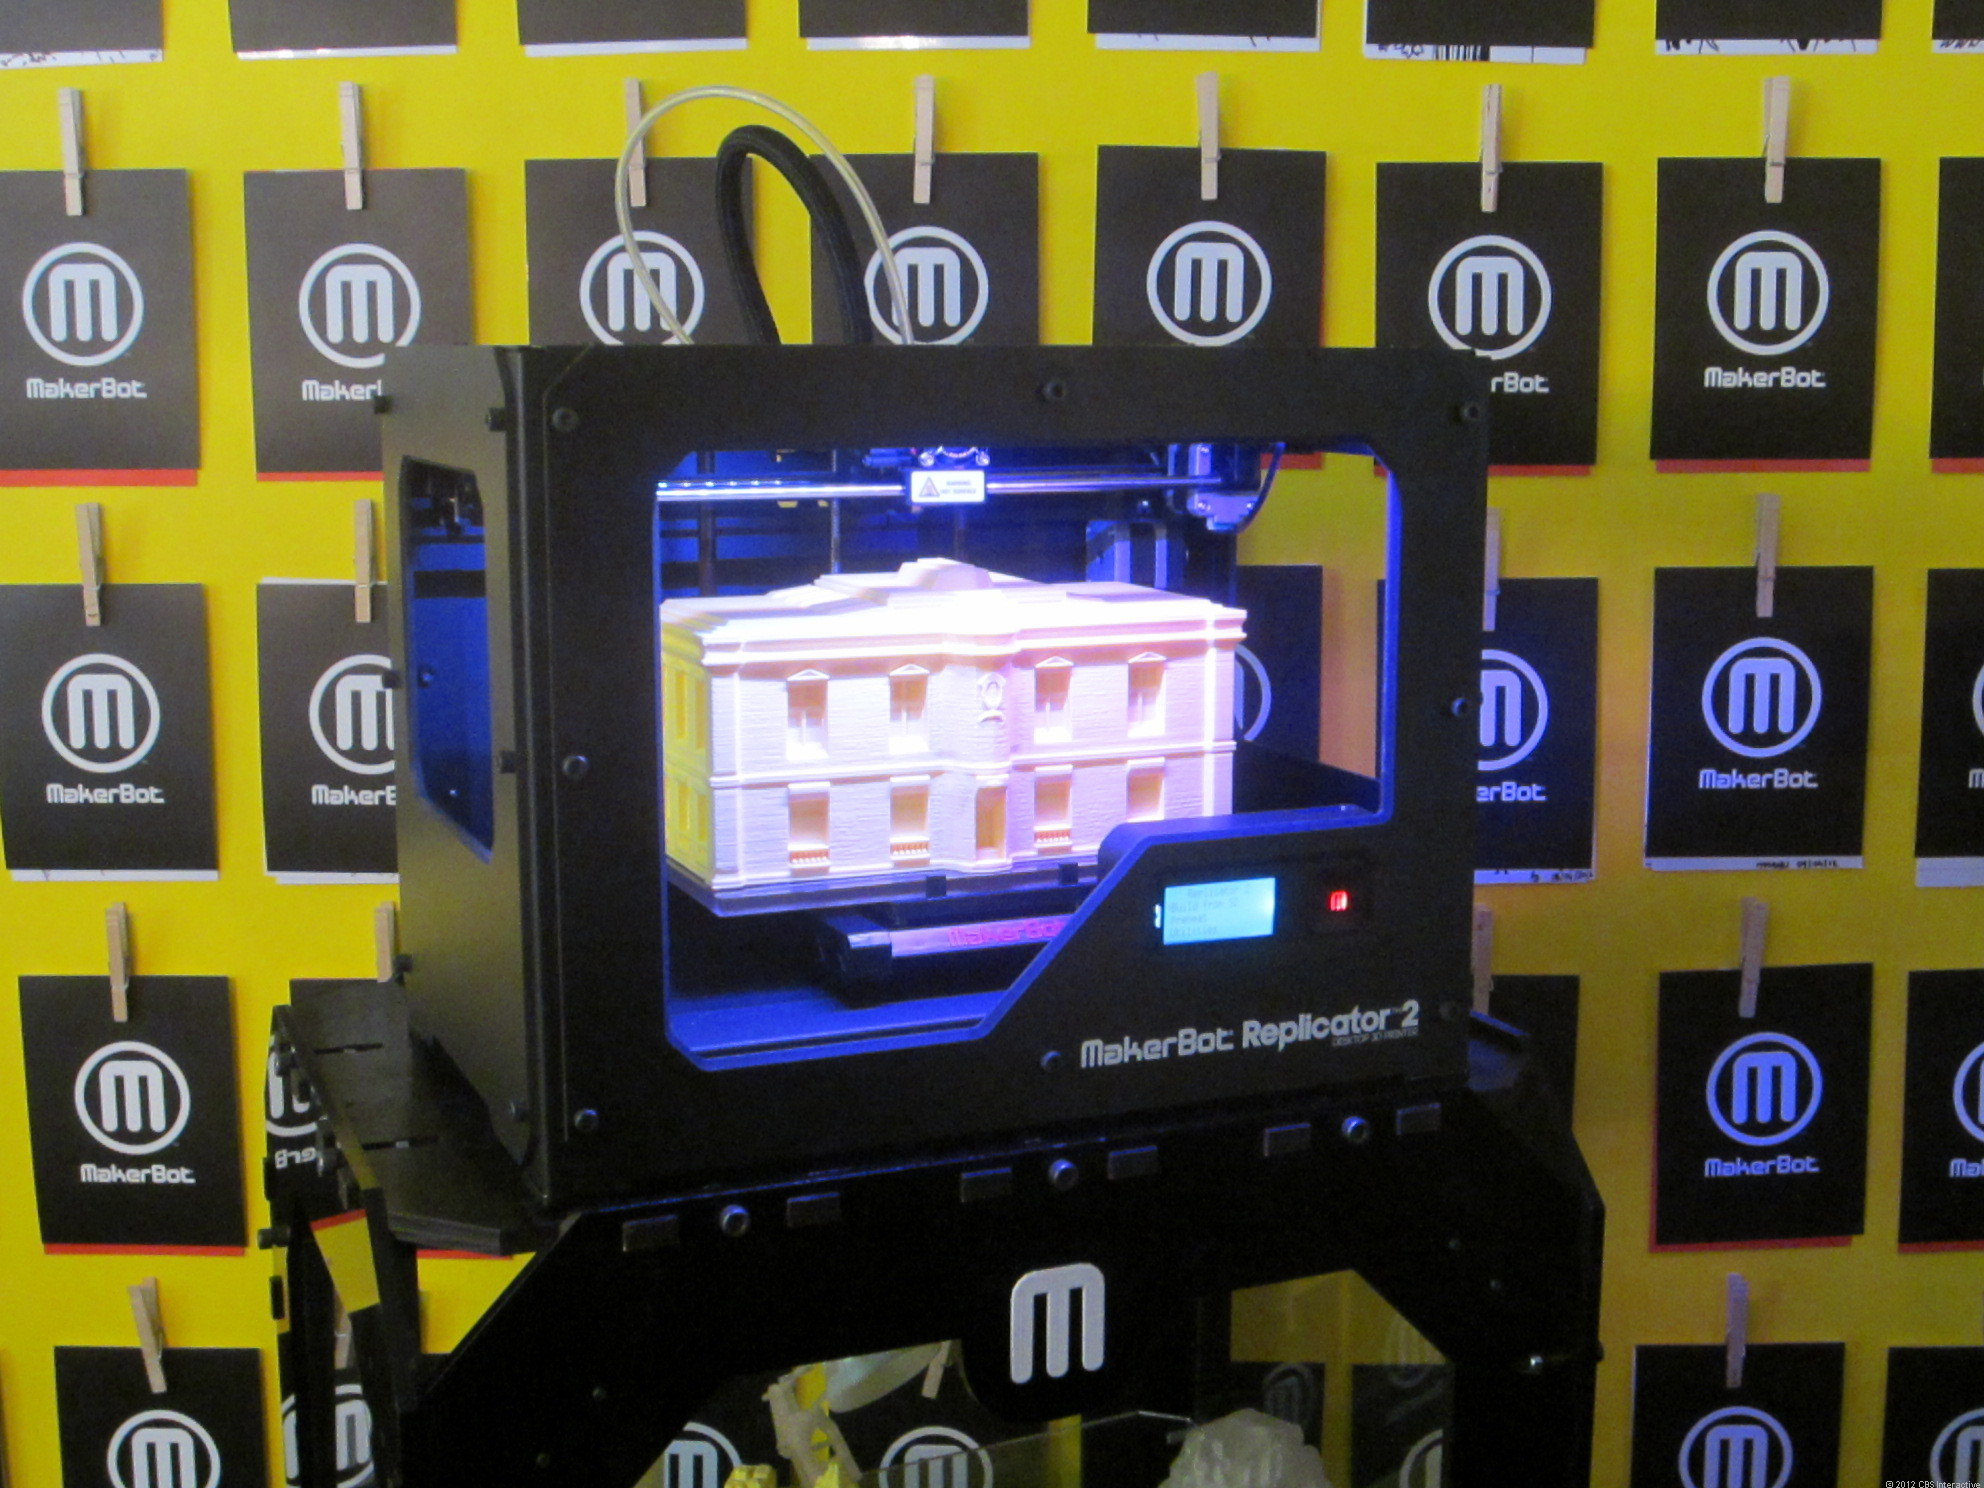 The MakerBot Replicator 2 can make larger, higher-quality prints than the previous model.